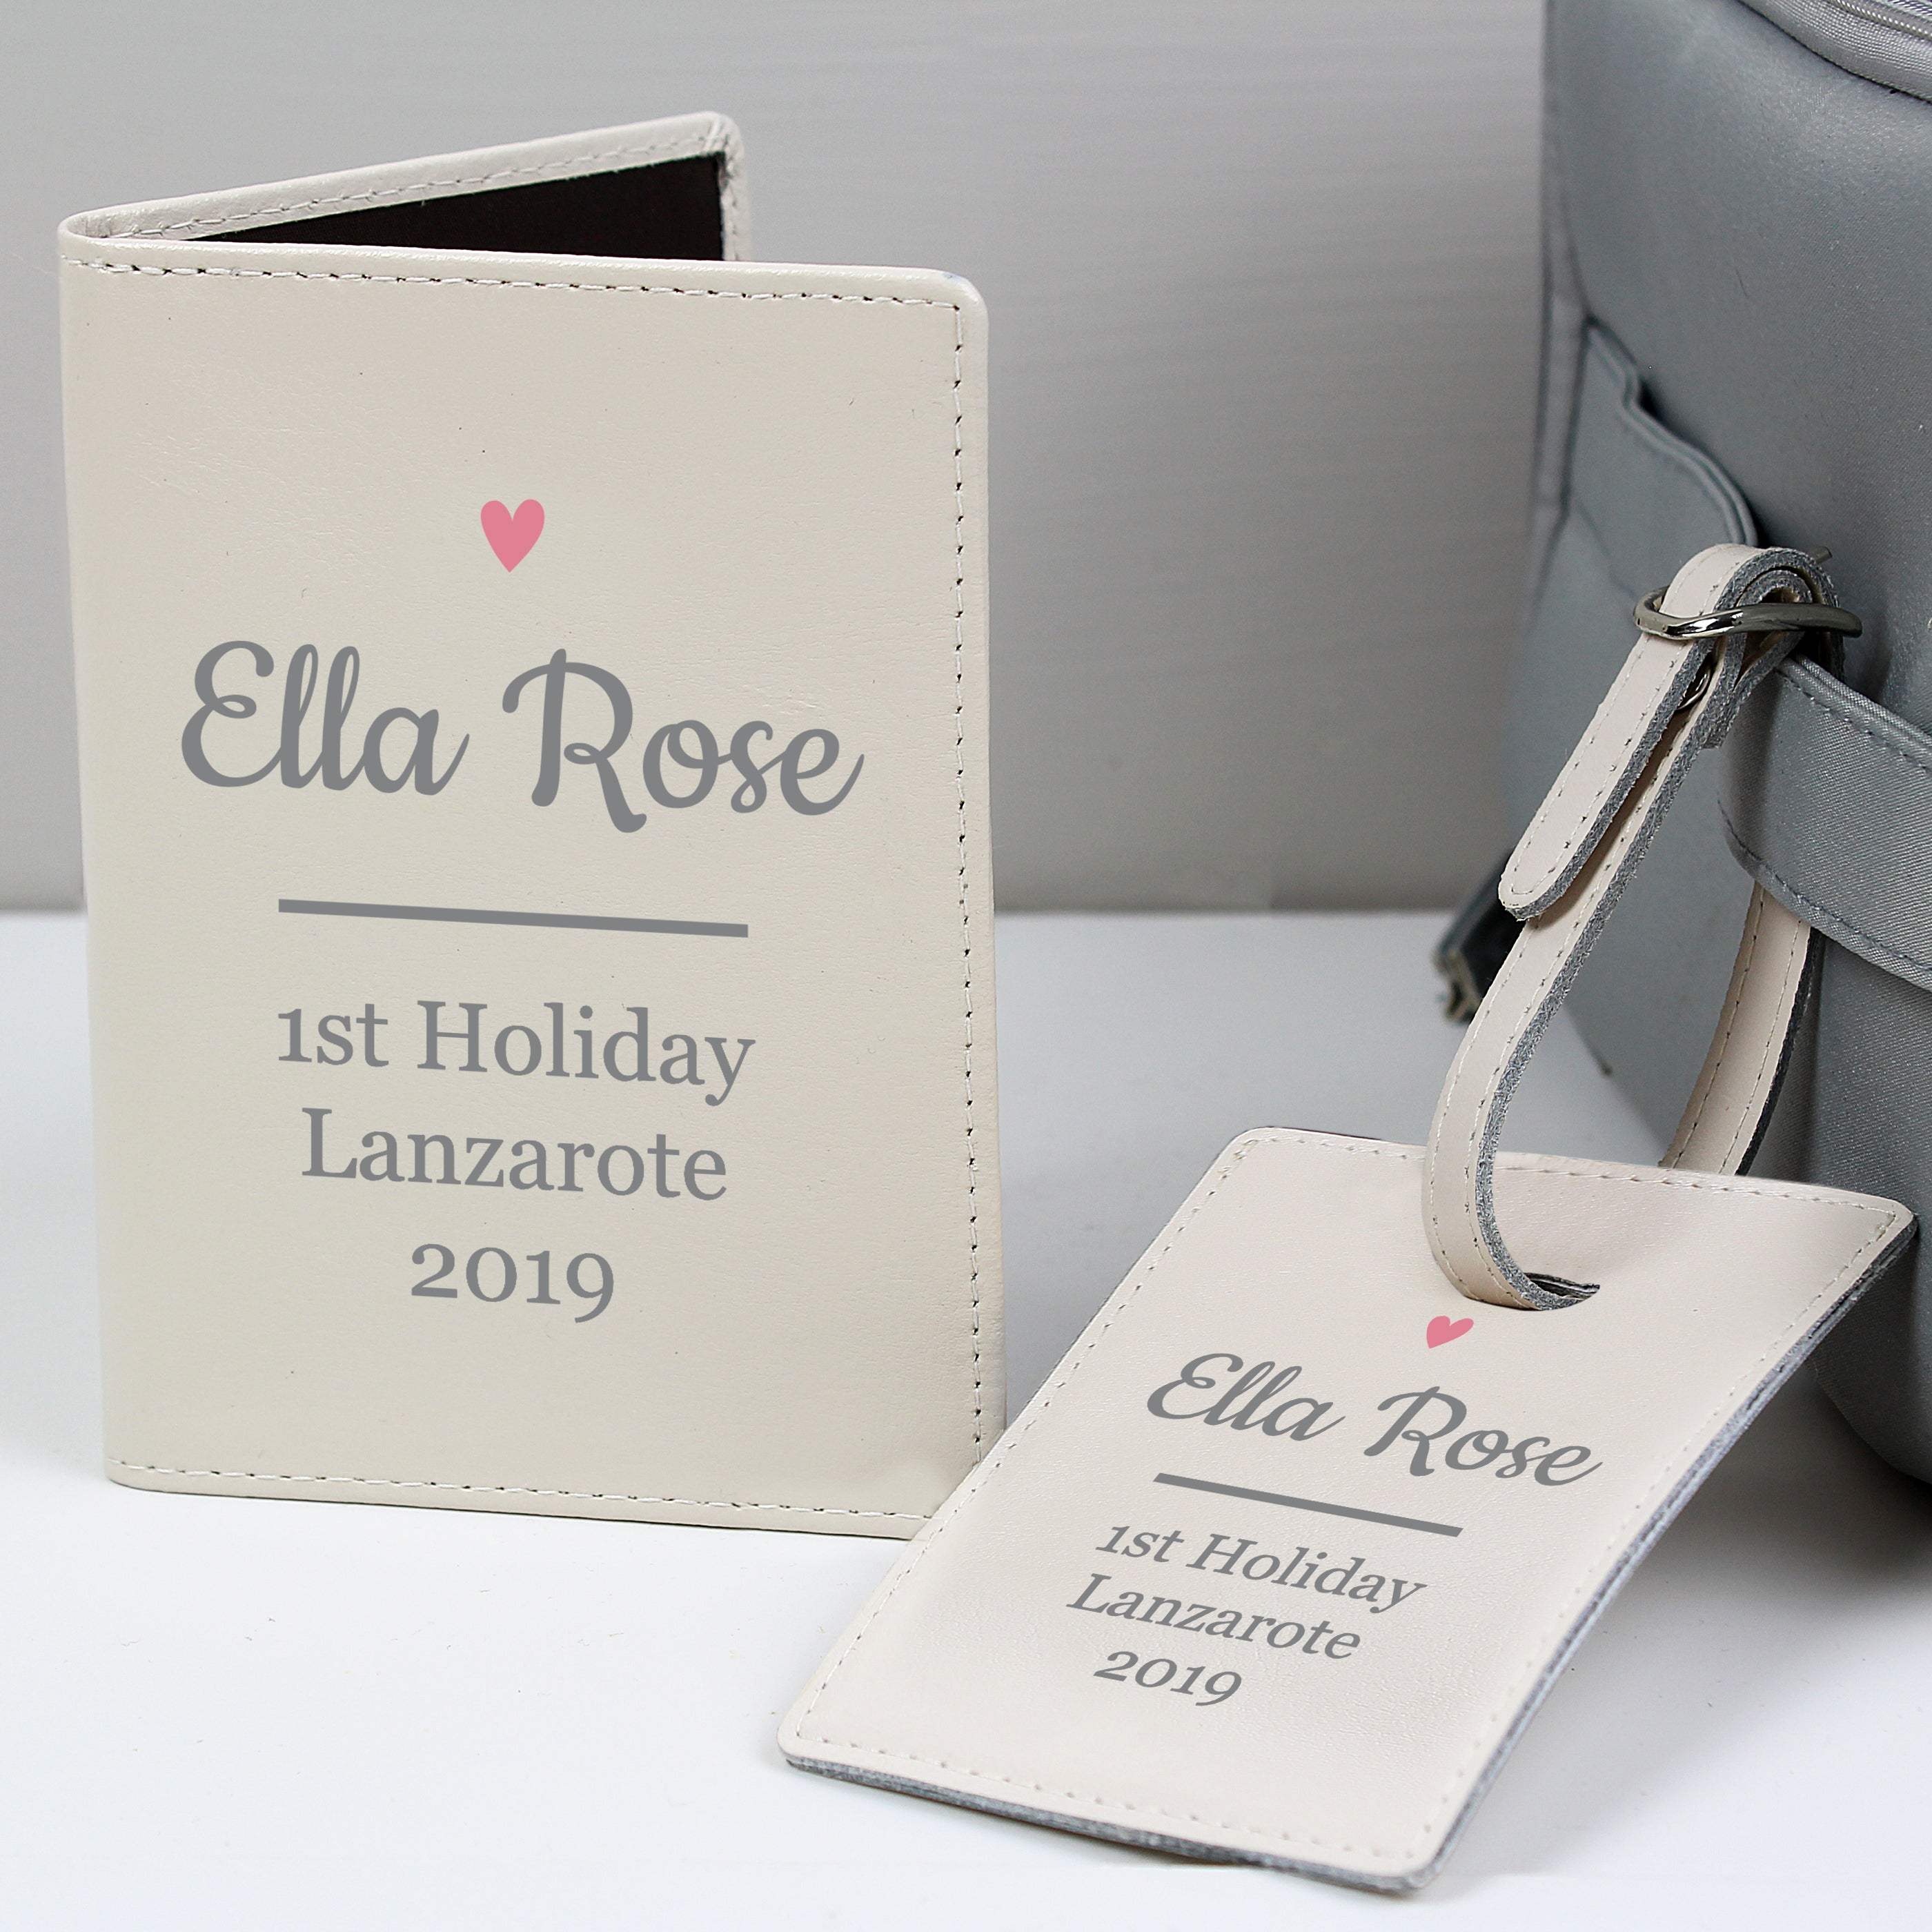 Personalised Pink Heart Cream Passport Holder & Luggage Tag Set, Luggage & Bags by Low Cost Gifts